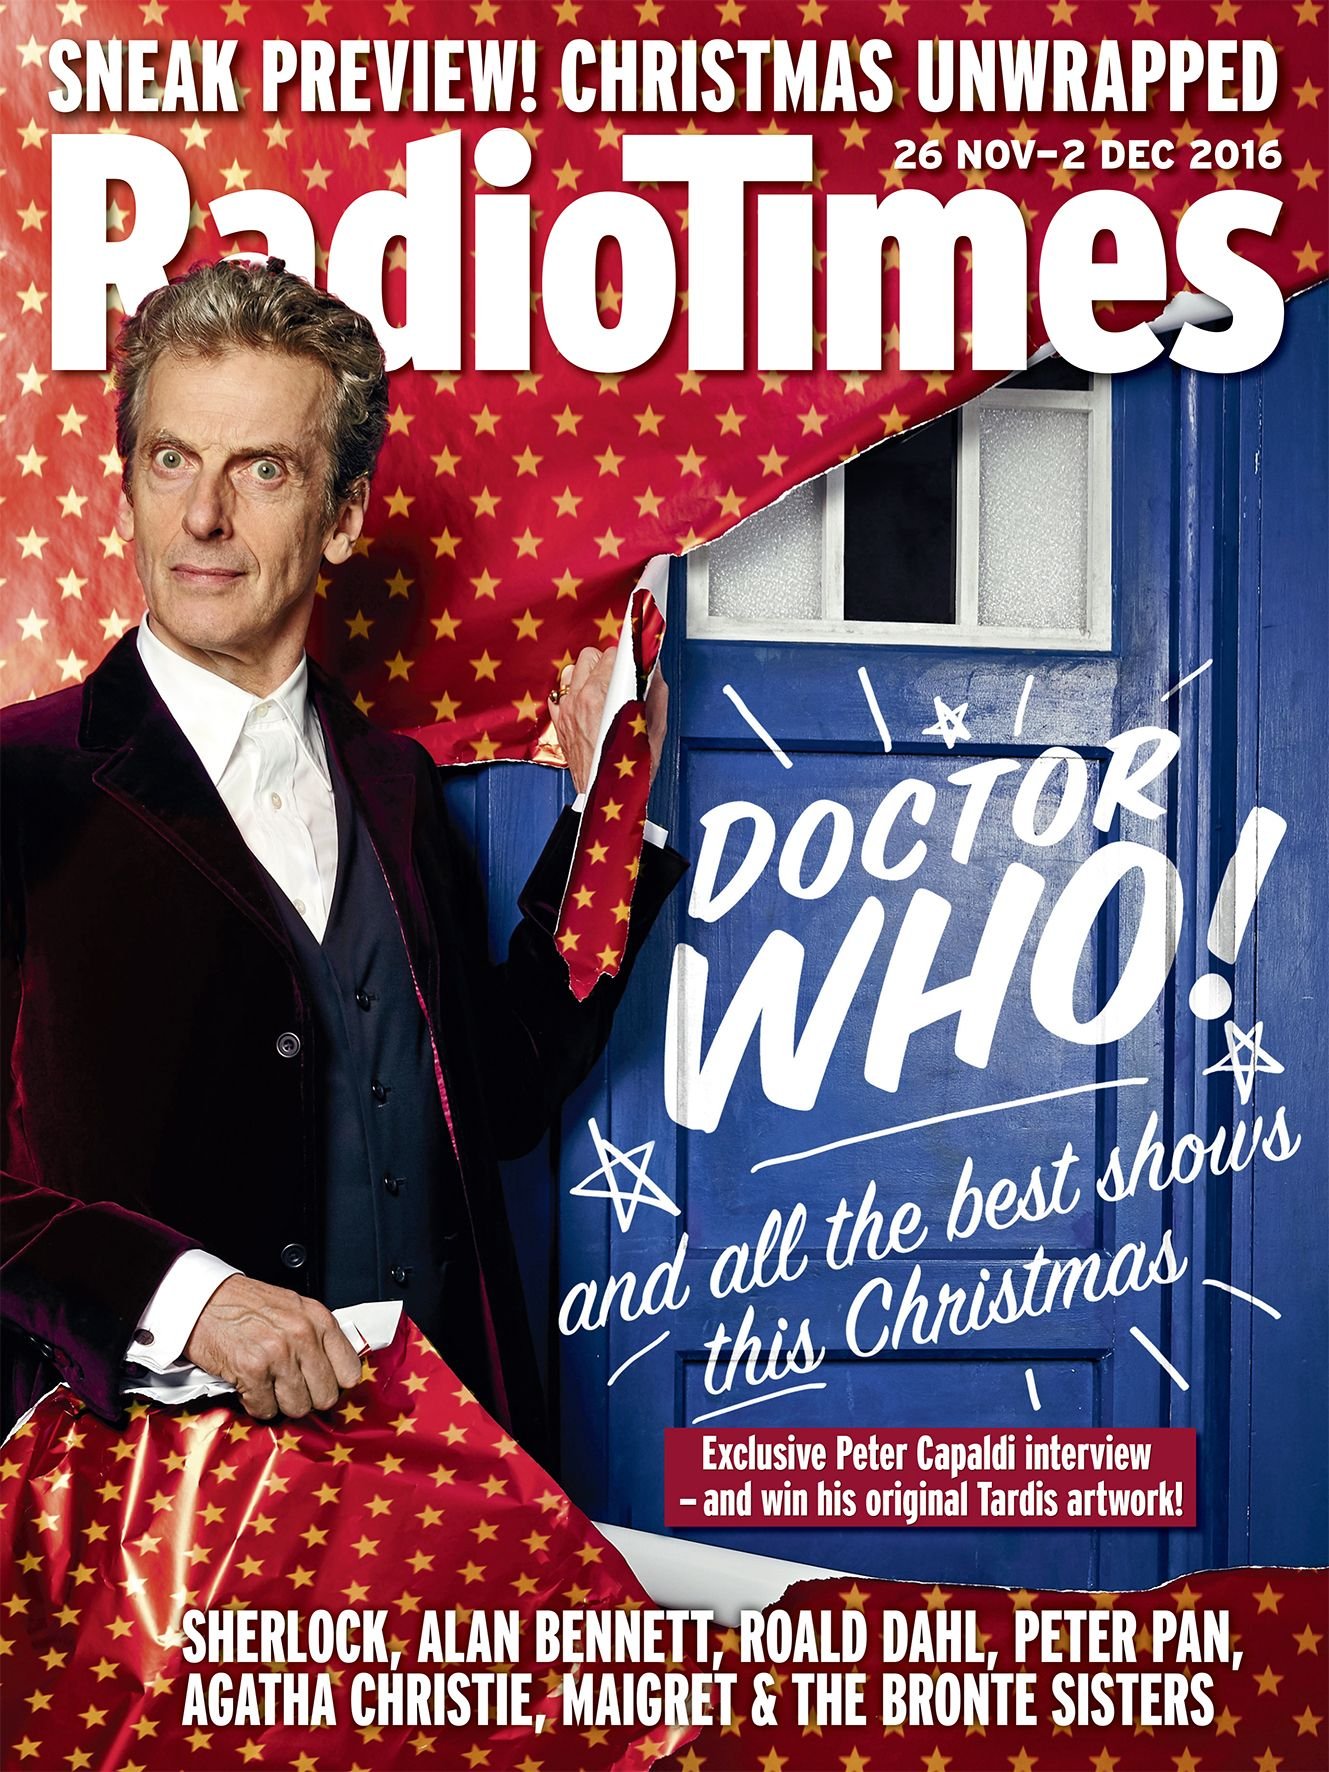 Radio Times (26 Nov - 2 Dec 2016) (Credit: Radio Times)